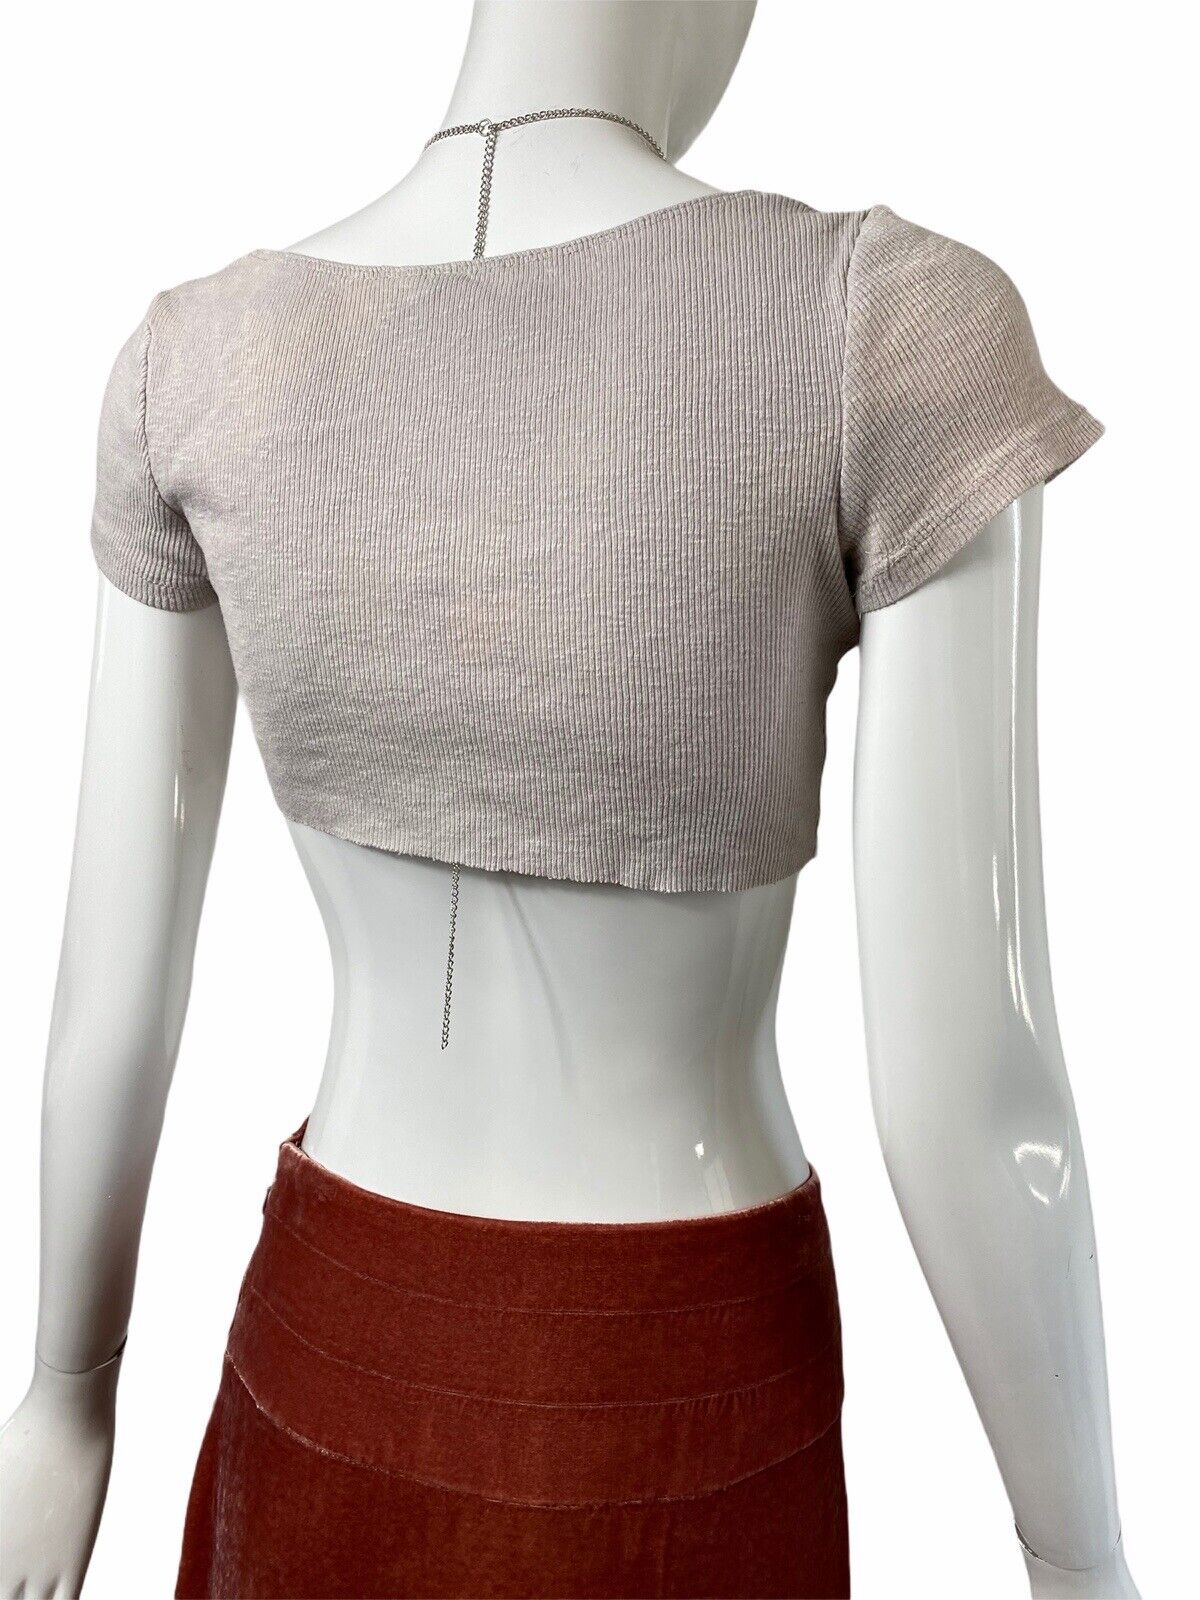 Fairycore Grunge Ribbed Crop Top Y2k 90s Aesthetic - image 5